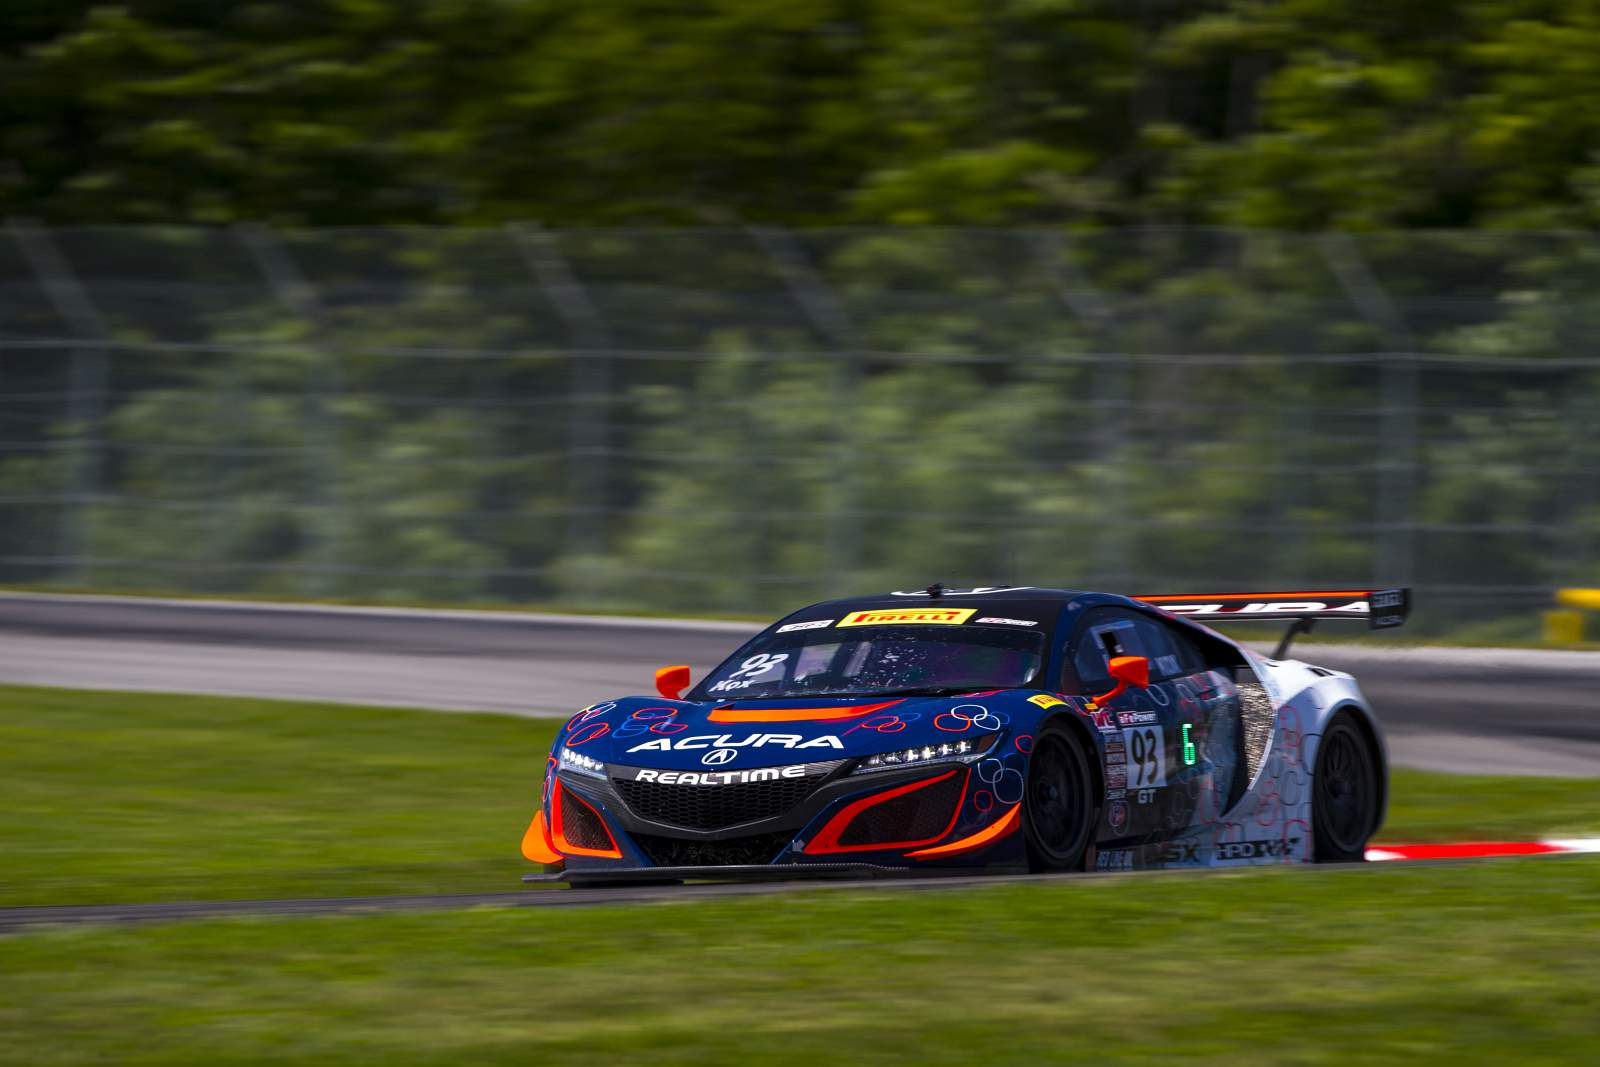 peter-kox-realtime-racing-pirelli-world-challenge-mid-ohio-103